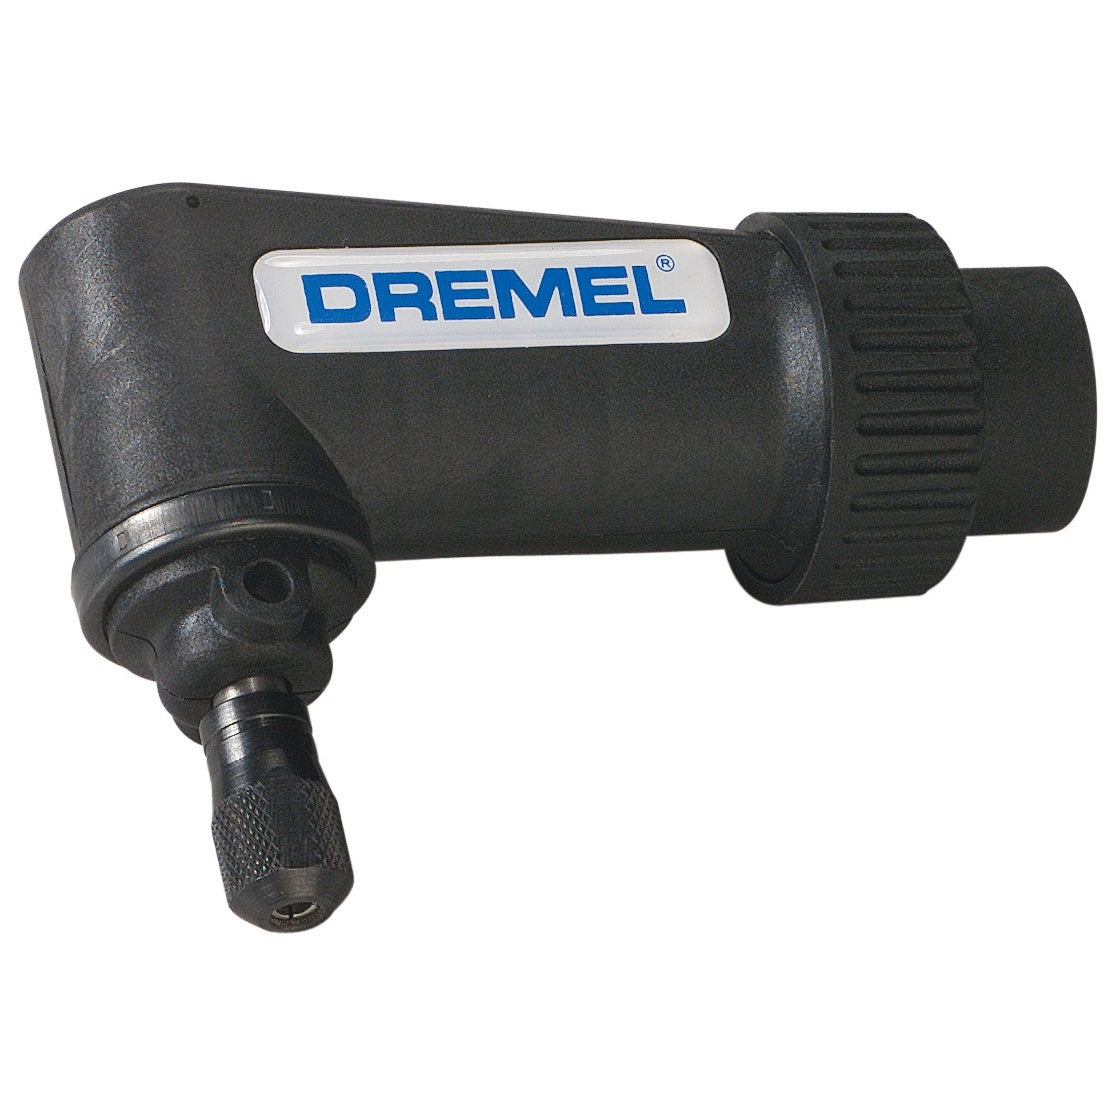 Dremel 575 Right Angle Attachment (Rotary tools)